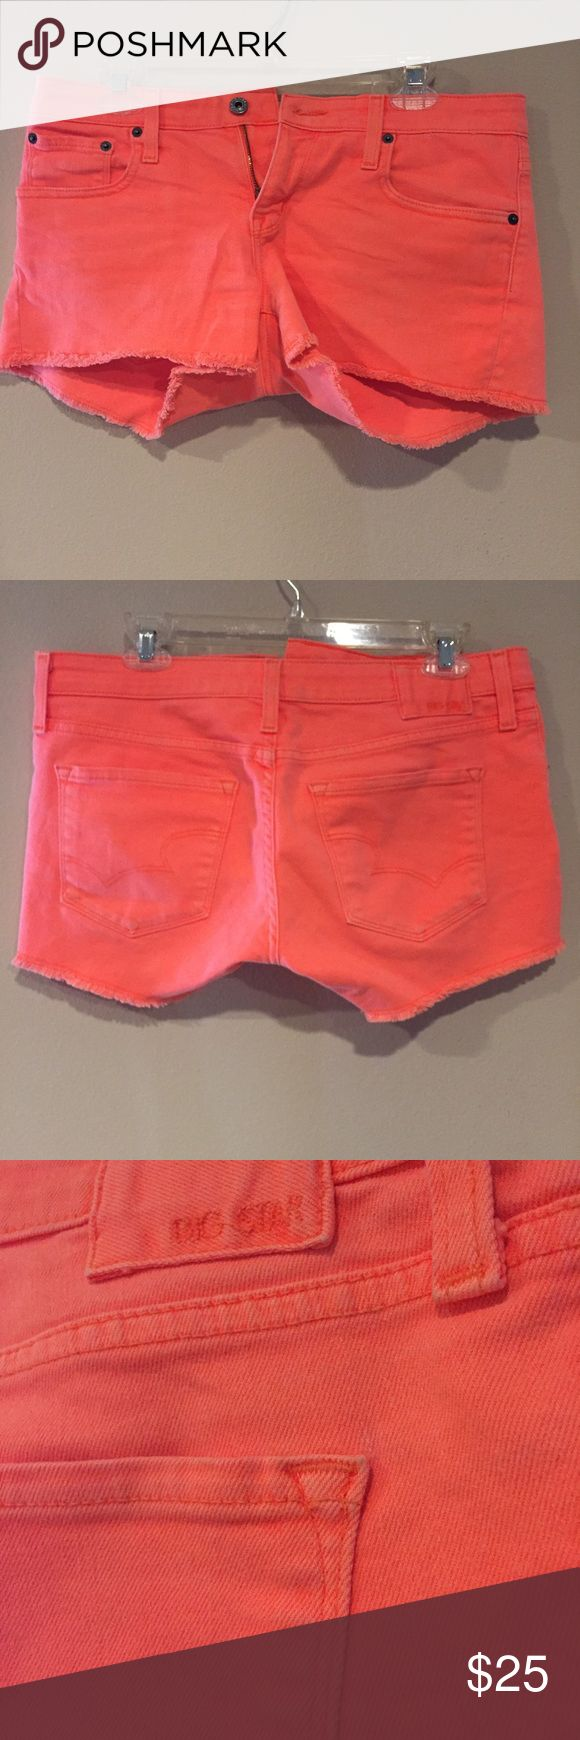 Big Star | Distressed Hot Orange Jean Short These bright orange shorts are so fun and look great on sun kissed skin in summer! Super comfortable with a little stretch. Big Star Shorts Jean Shorts